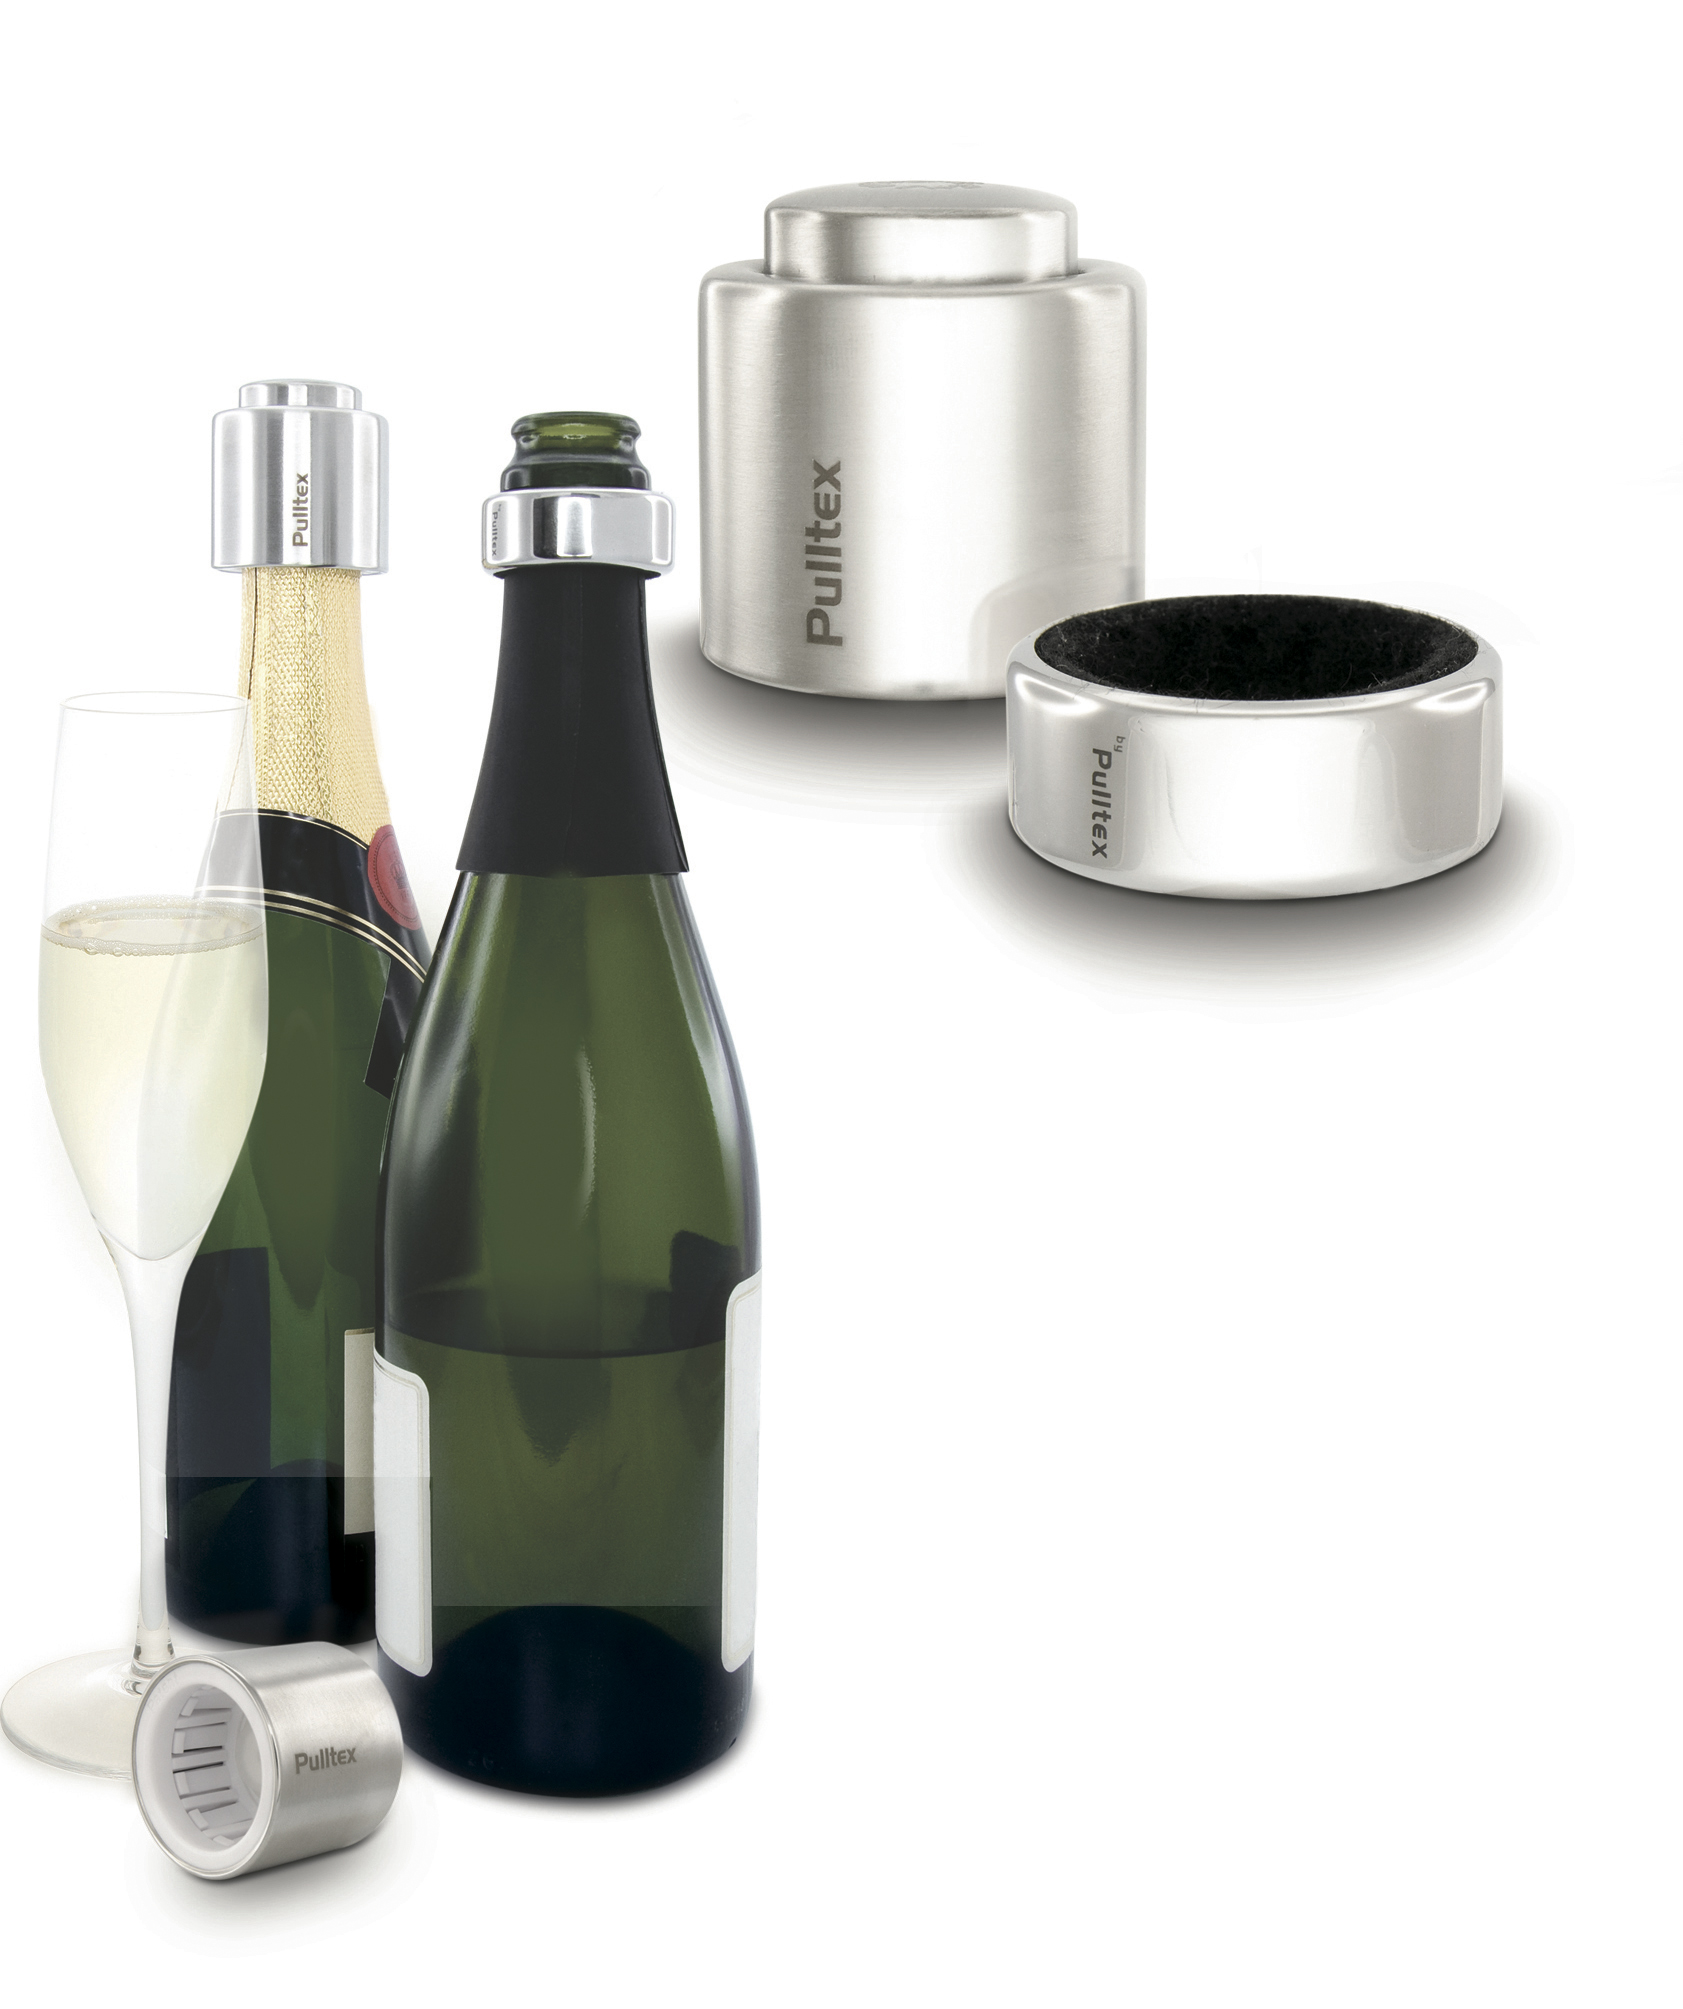 PWC CHAMPAGNE KIT SECURITY